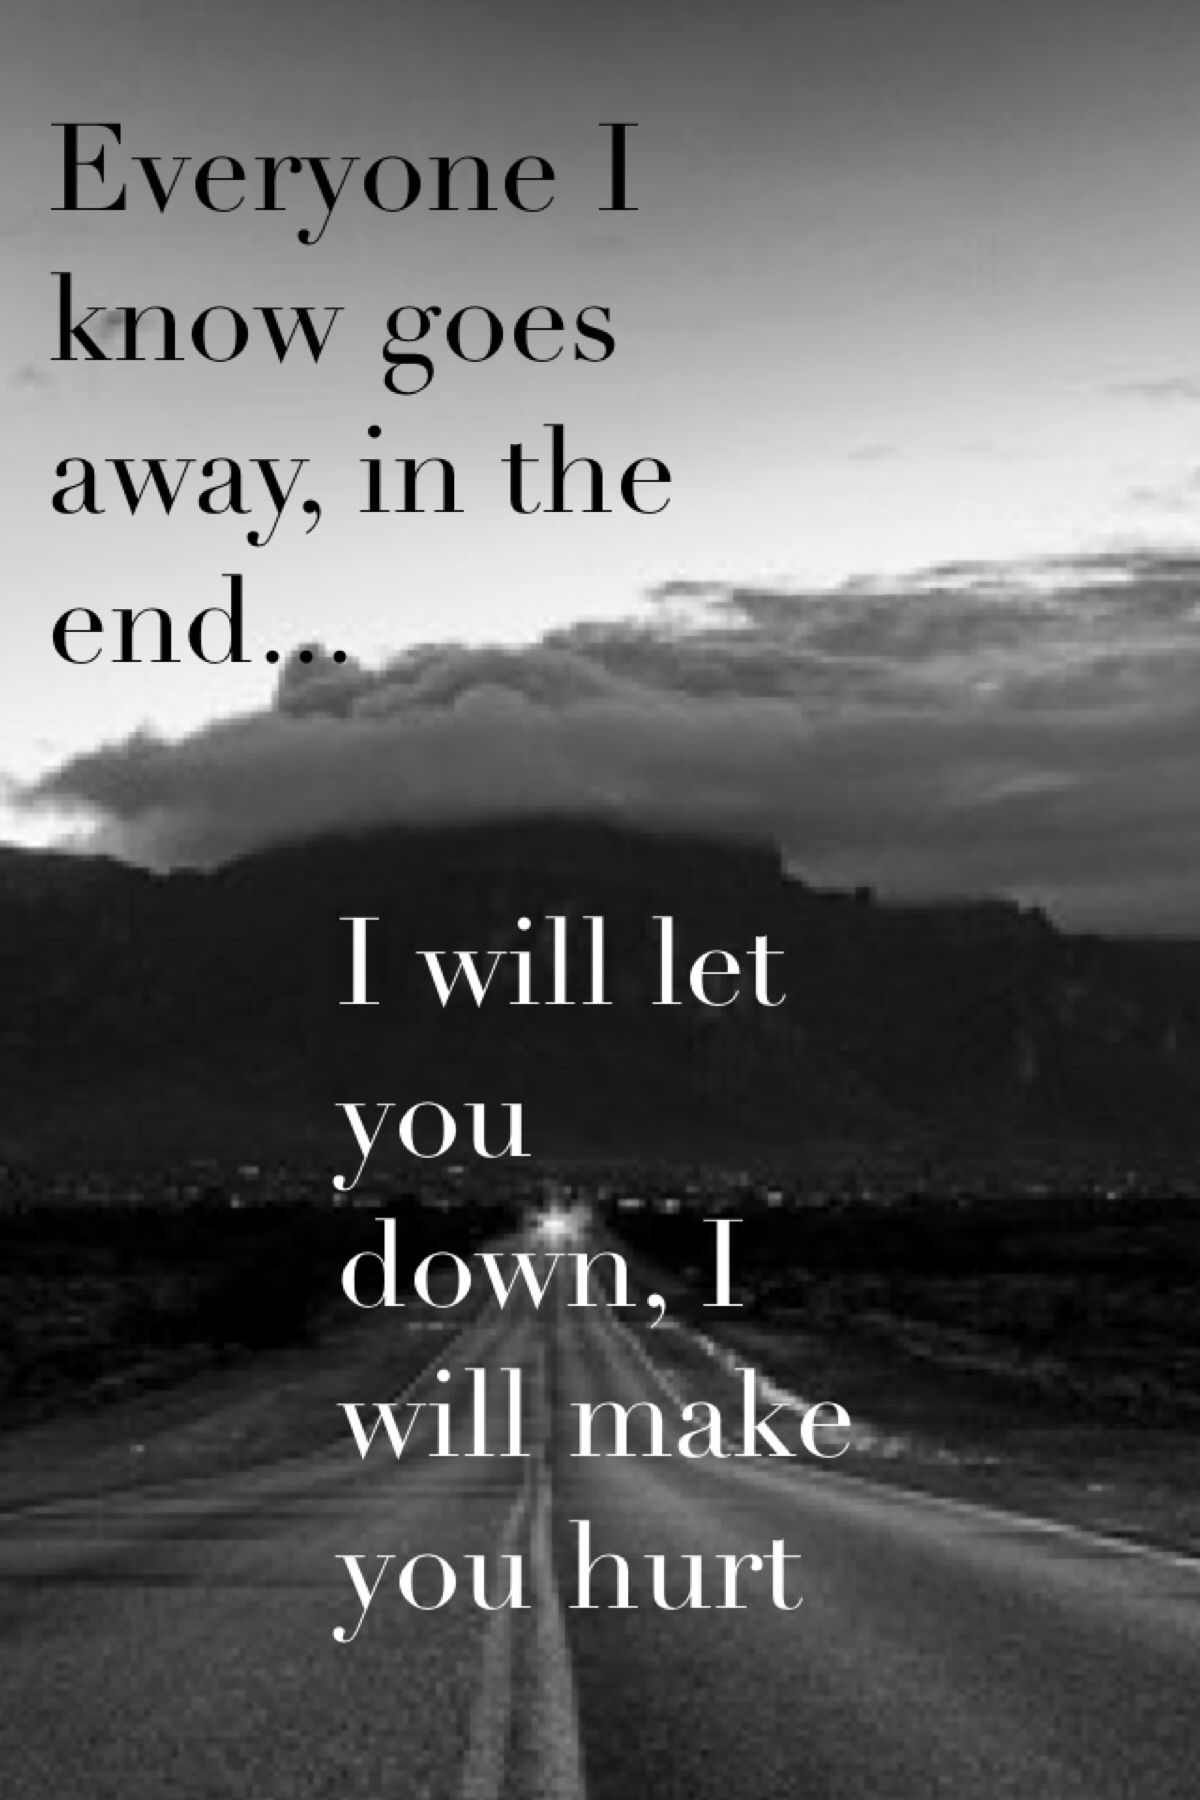 Johnny Cash- Hurt | Song Quotes! | Pinterest | Johnny cash, Song ...